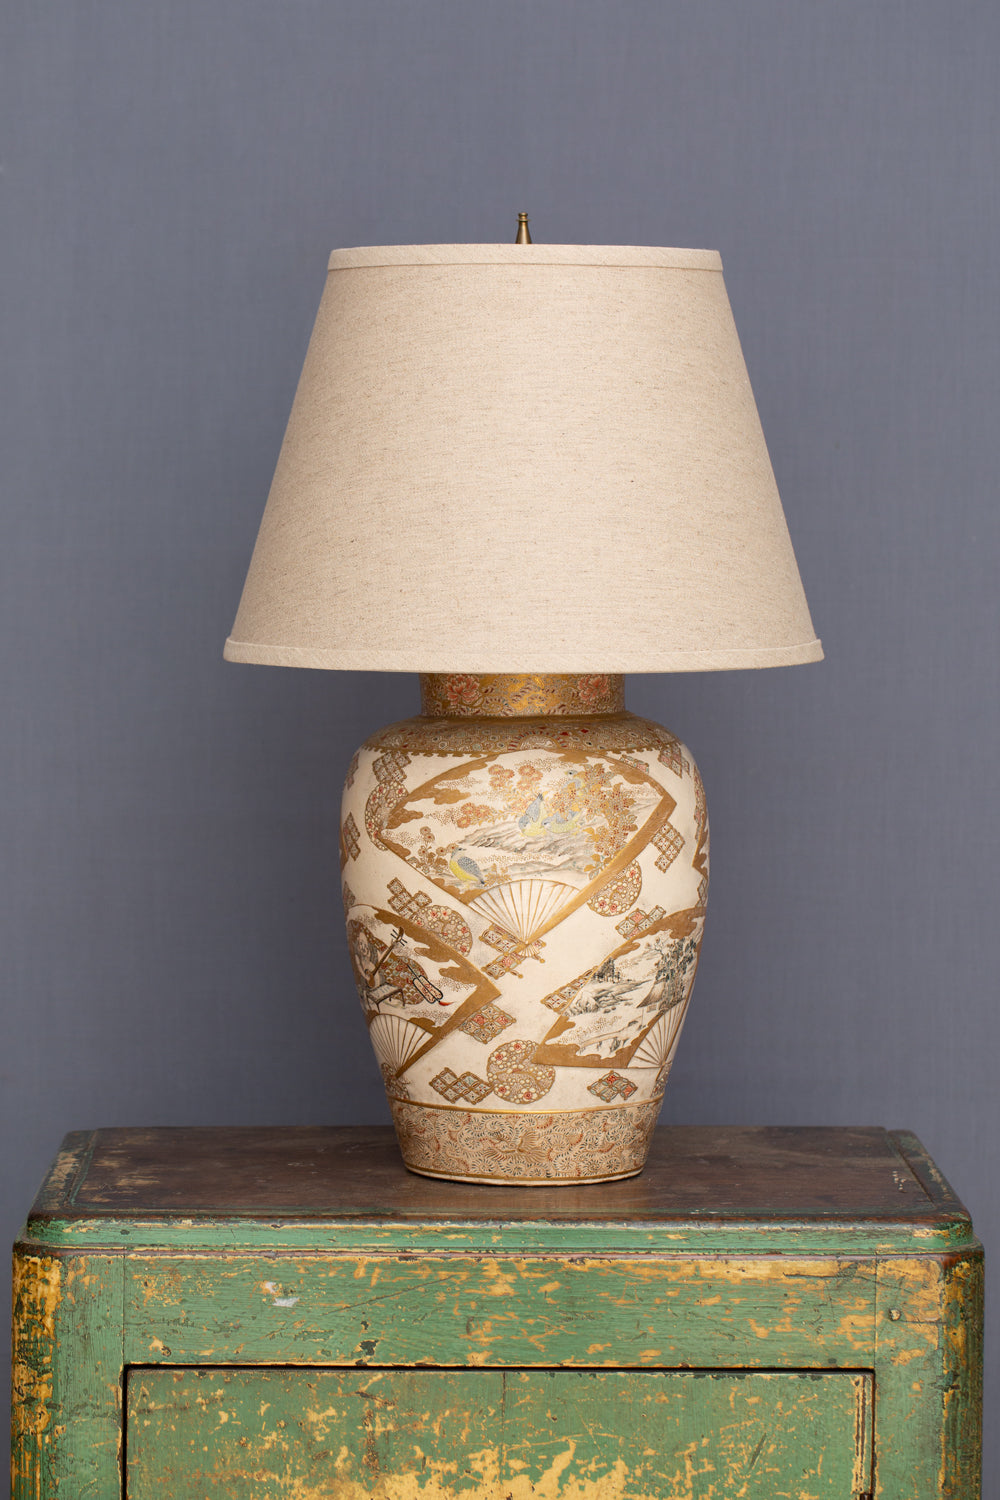 Late 19th - Early 20th Century Japanese Vase Converted into a Lamp